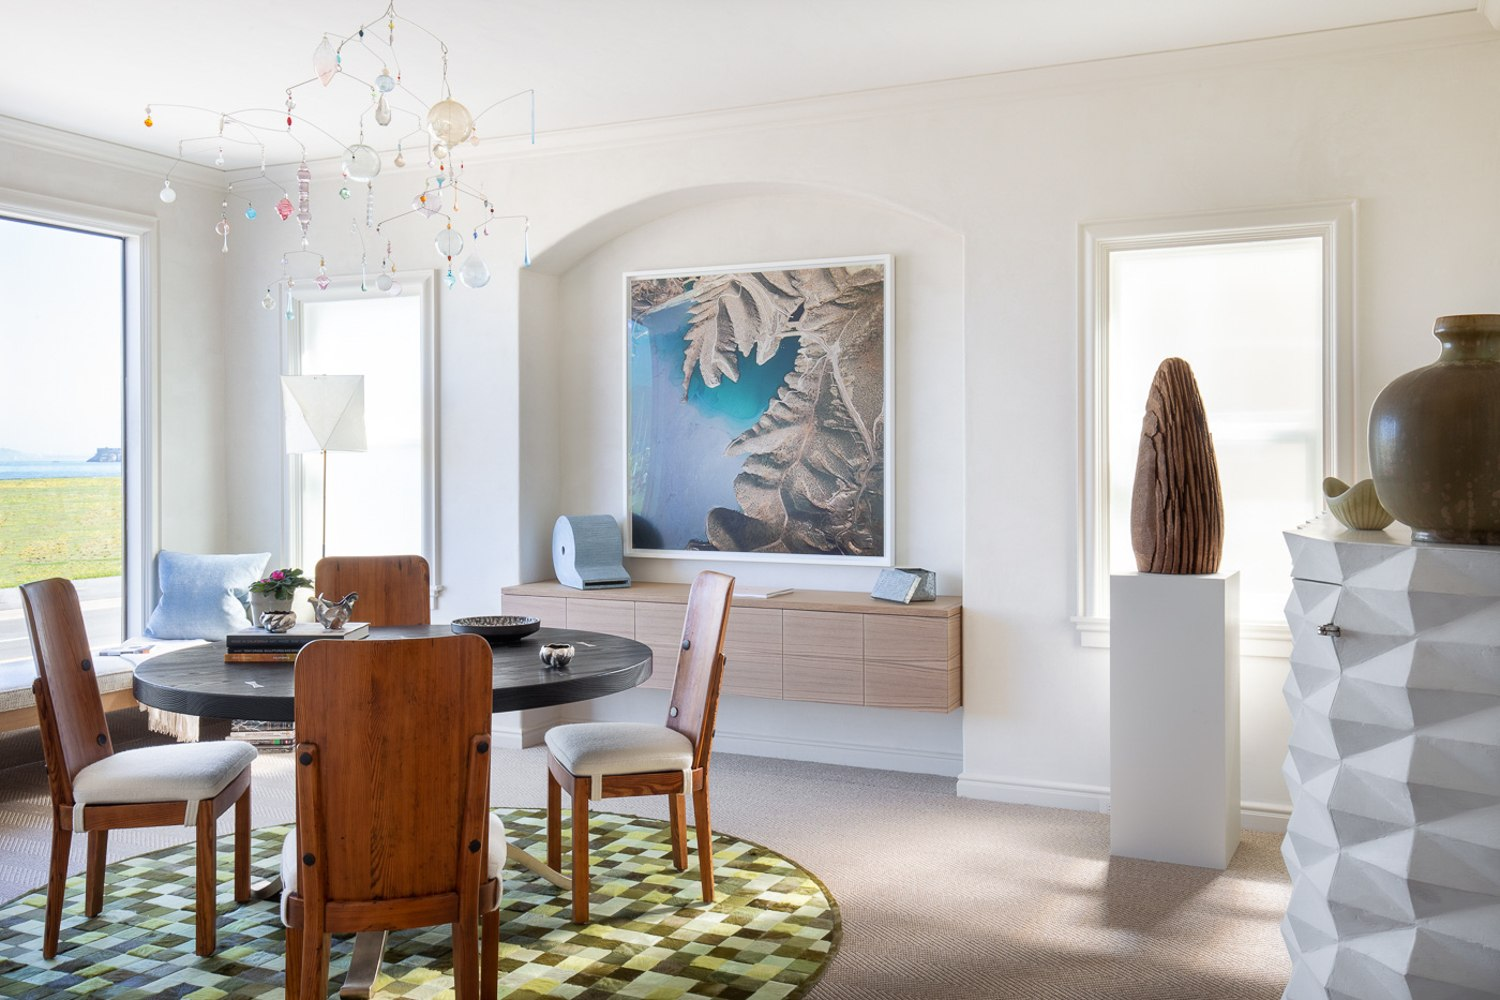 earby, designer David Bjorngaard created a dining room rich with stories reflecting the setting, in particular the Marin Headlands visible in the distance. In a material sense, the furnishings relate to the the look and feel of sandy beaches, weathered driftwood and blue water.